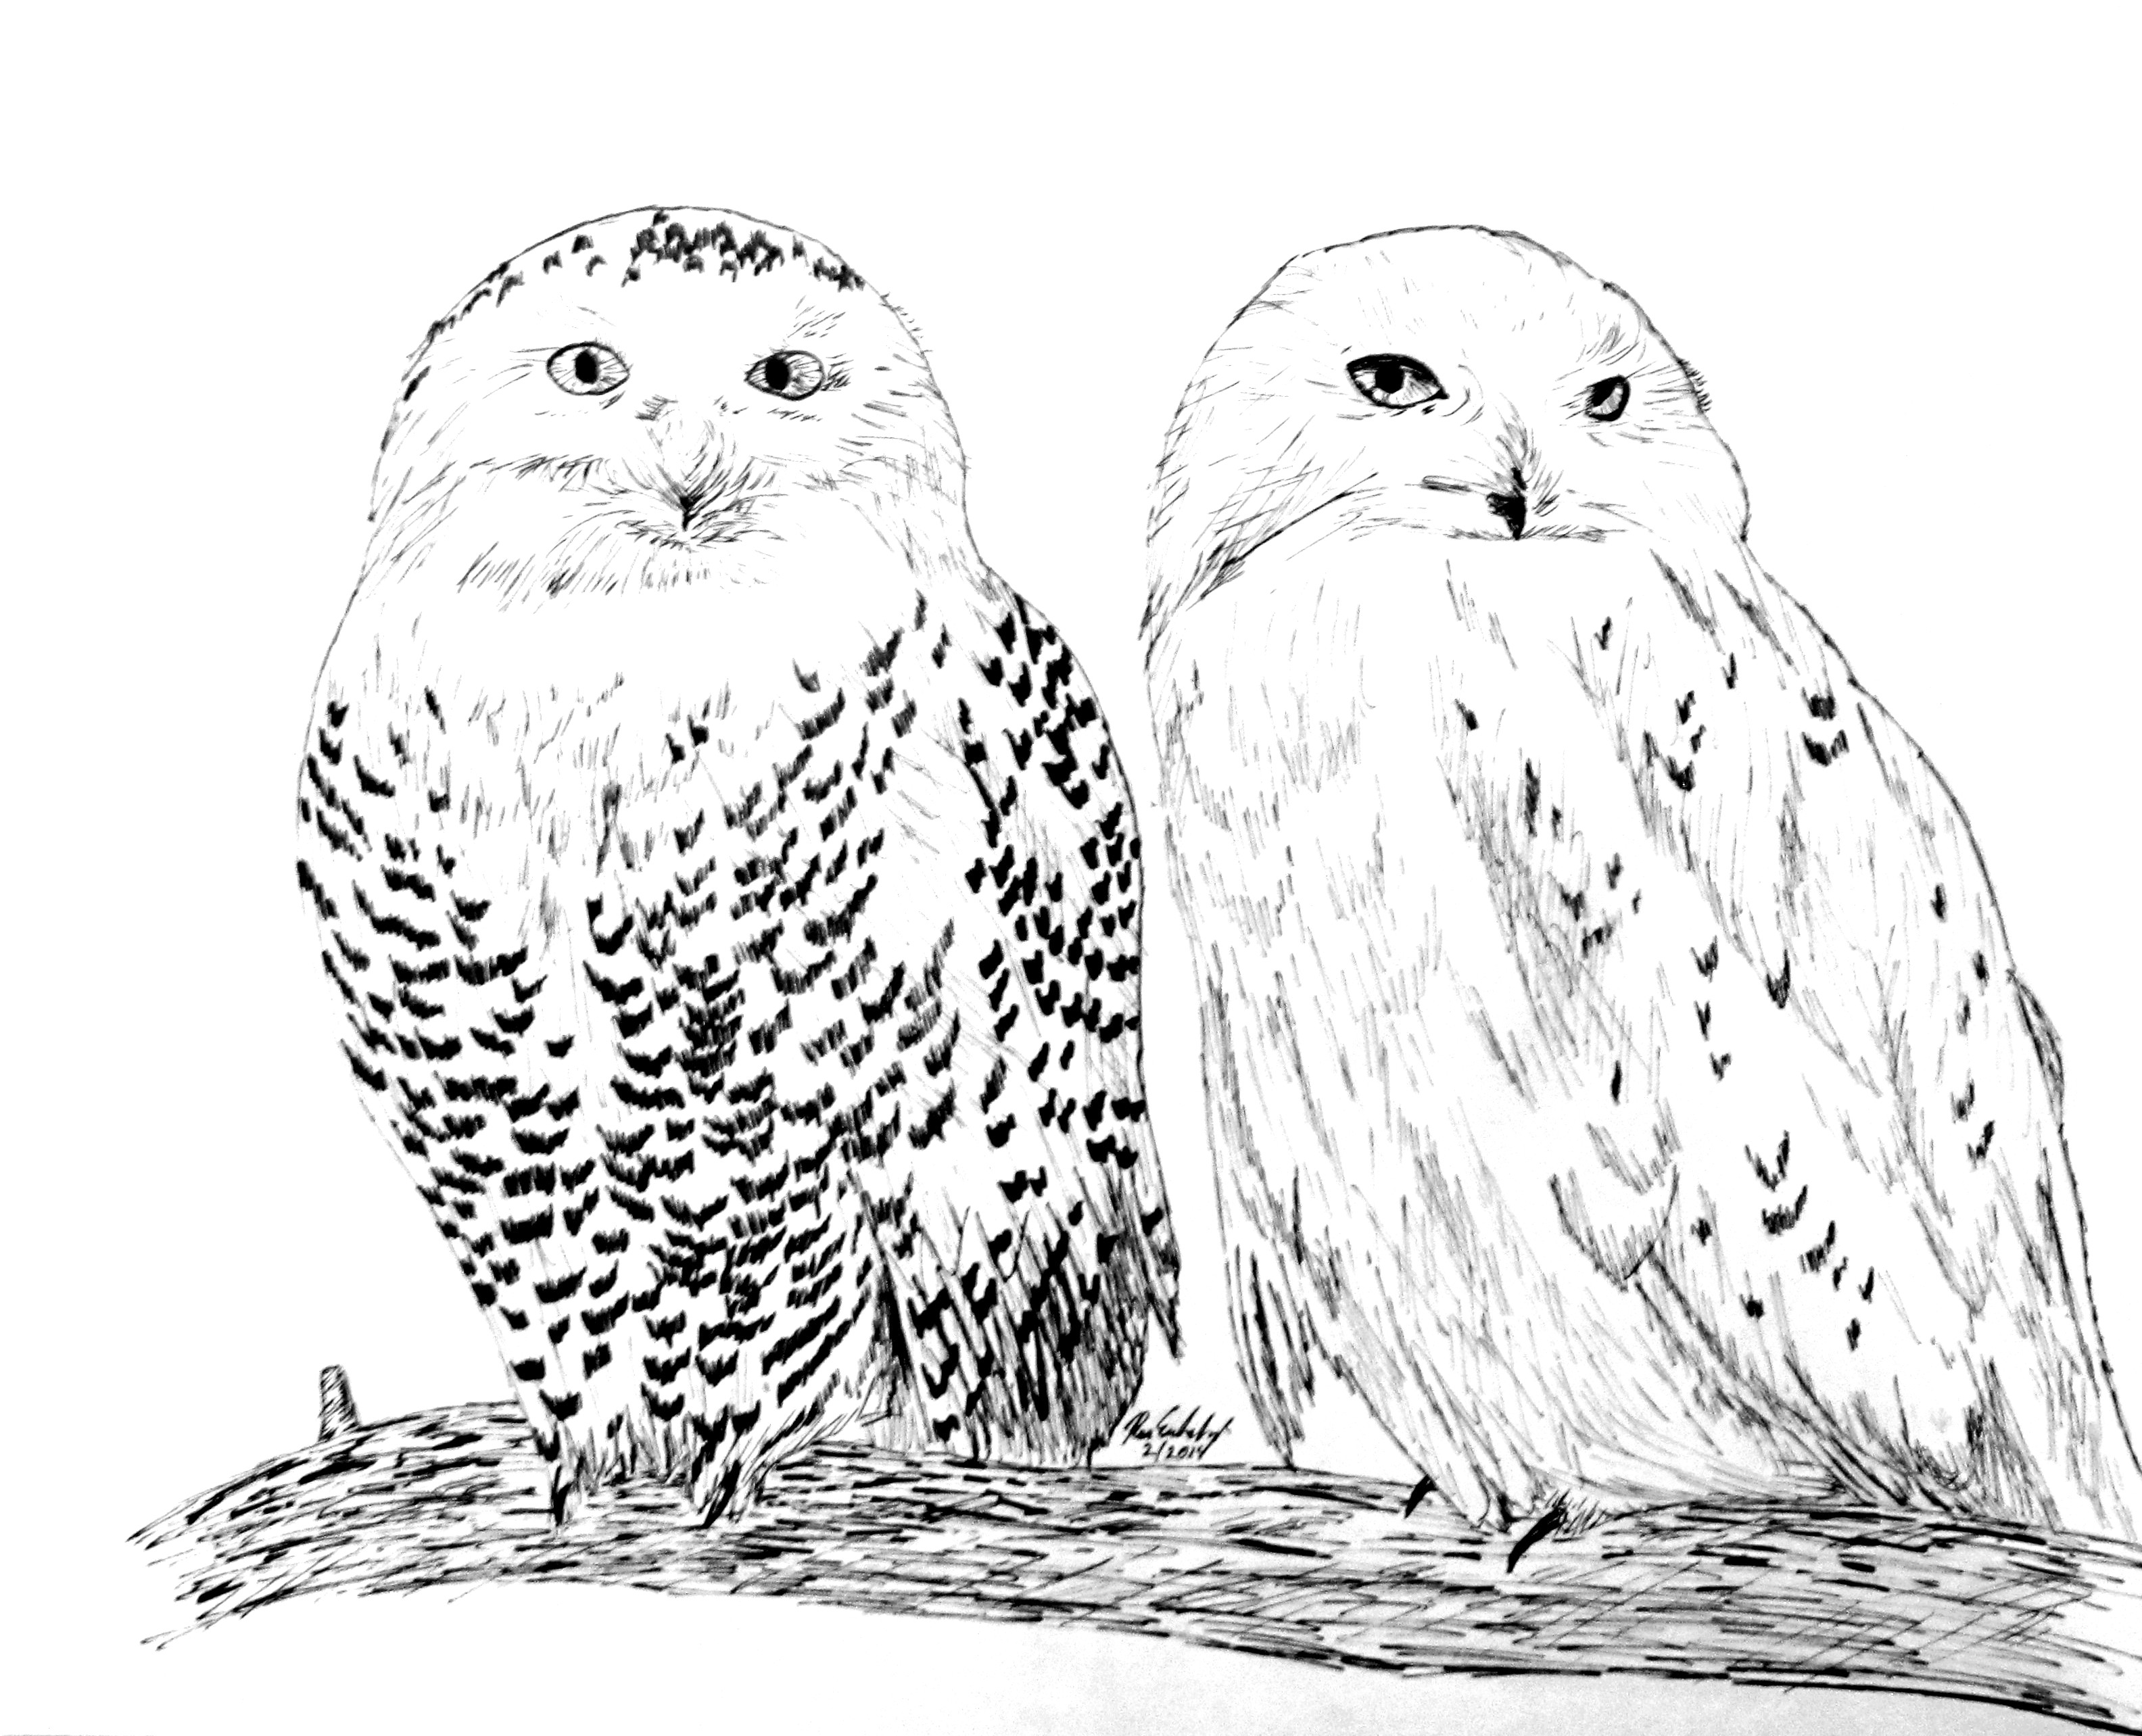 snowy owl pictures to print pencil drawing of a snowy owl by uk artist gary tymon snowy print pictures owl to